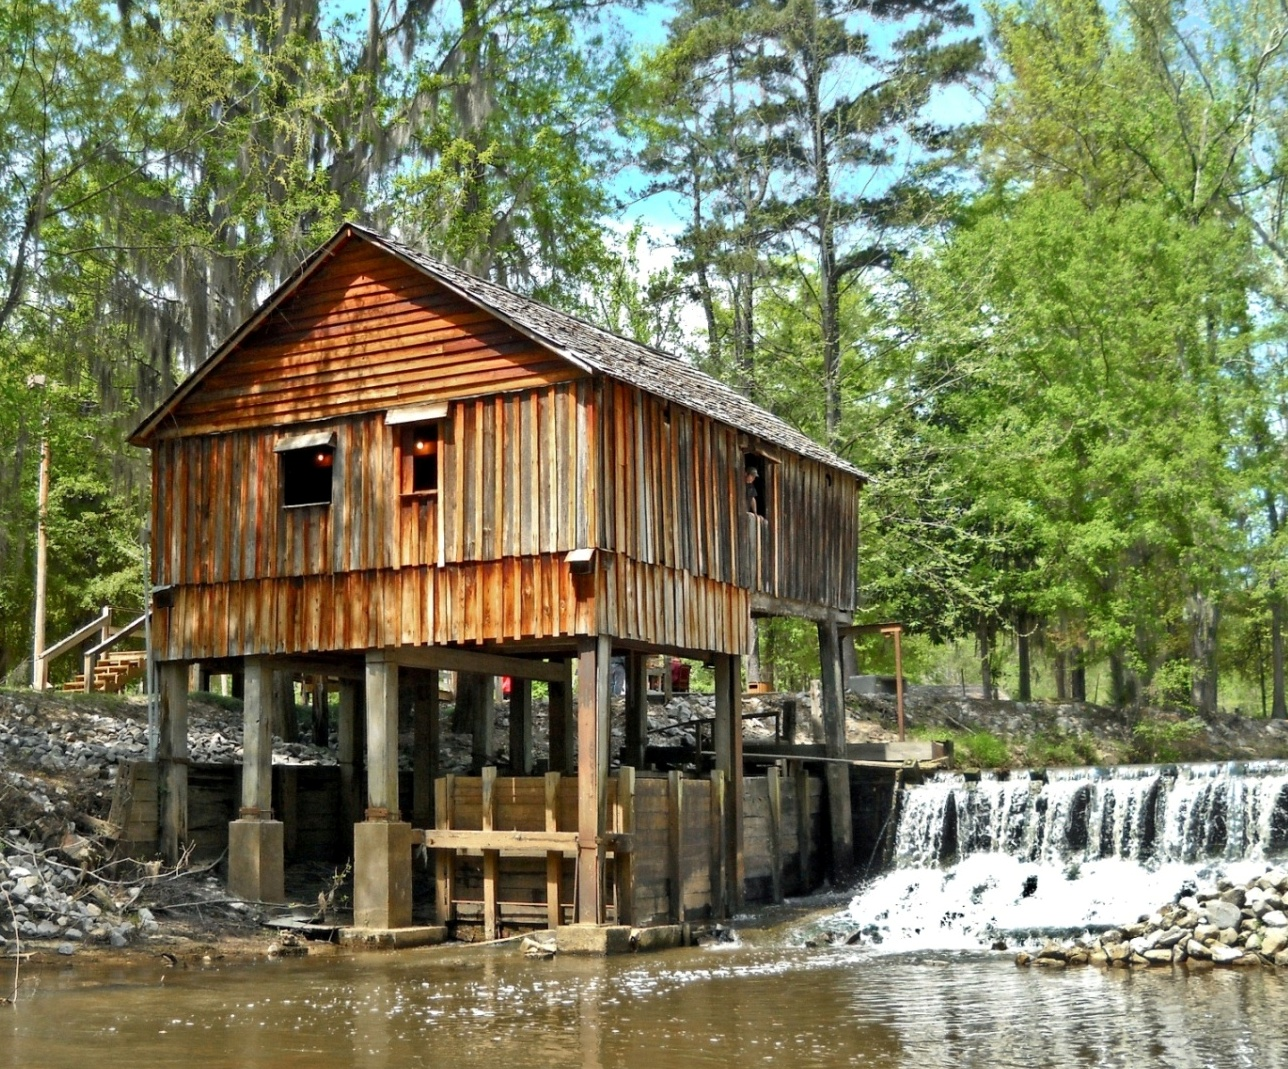 Pioneer Days at Rikard's Mill